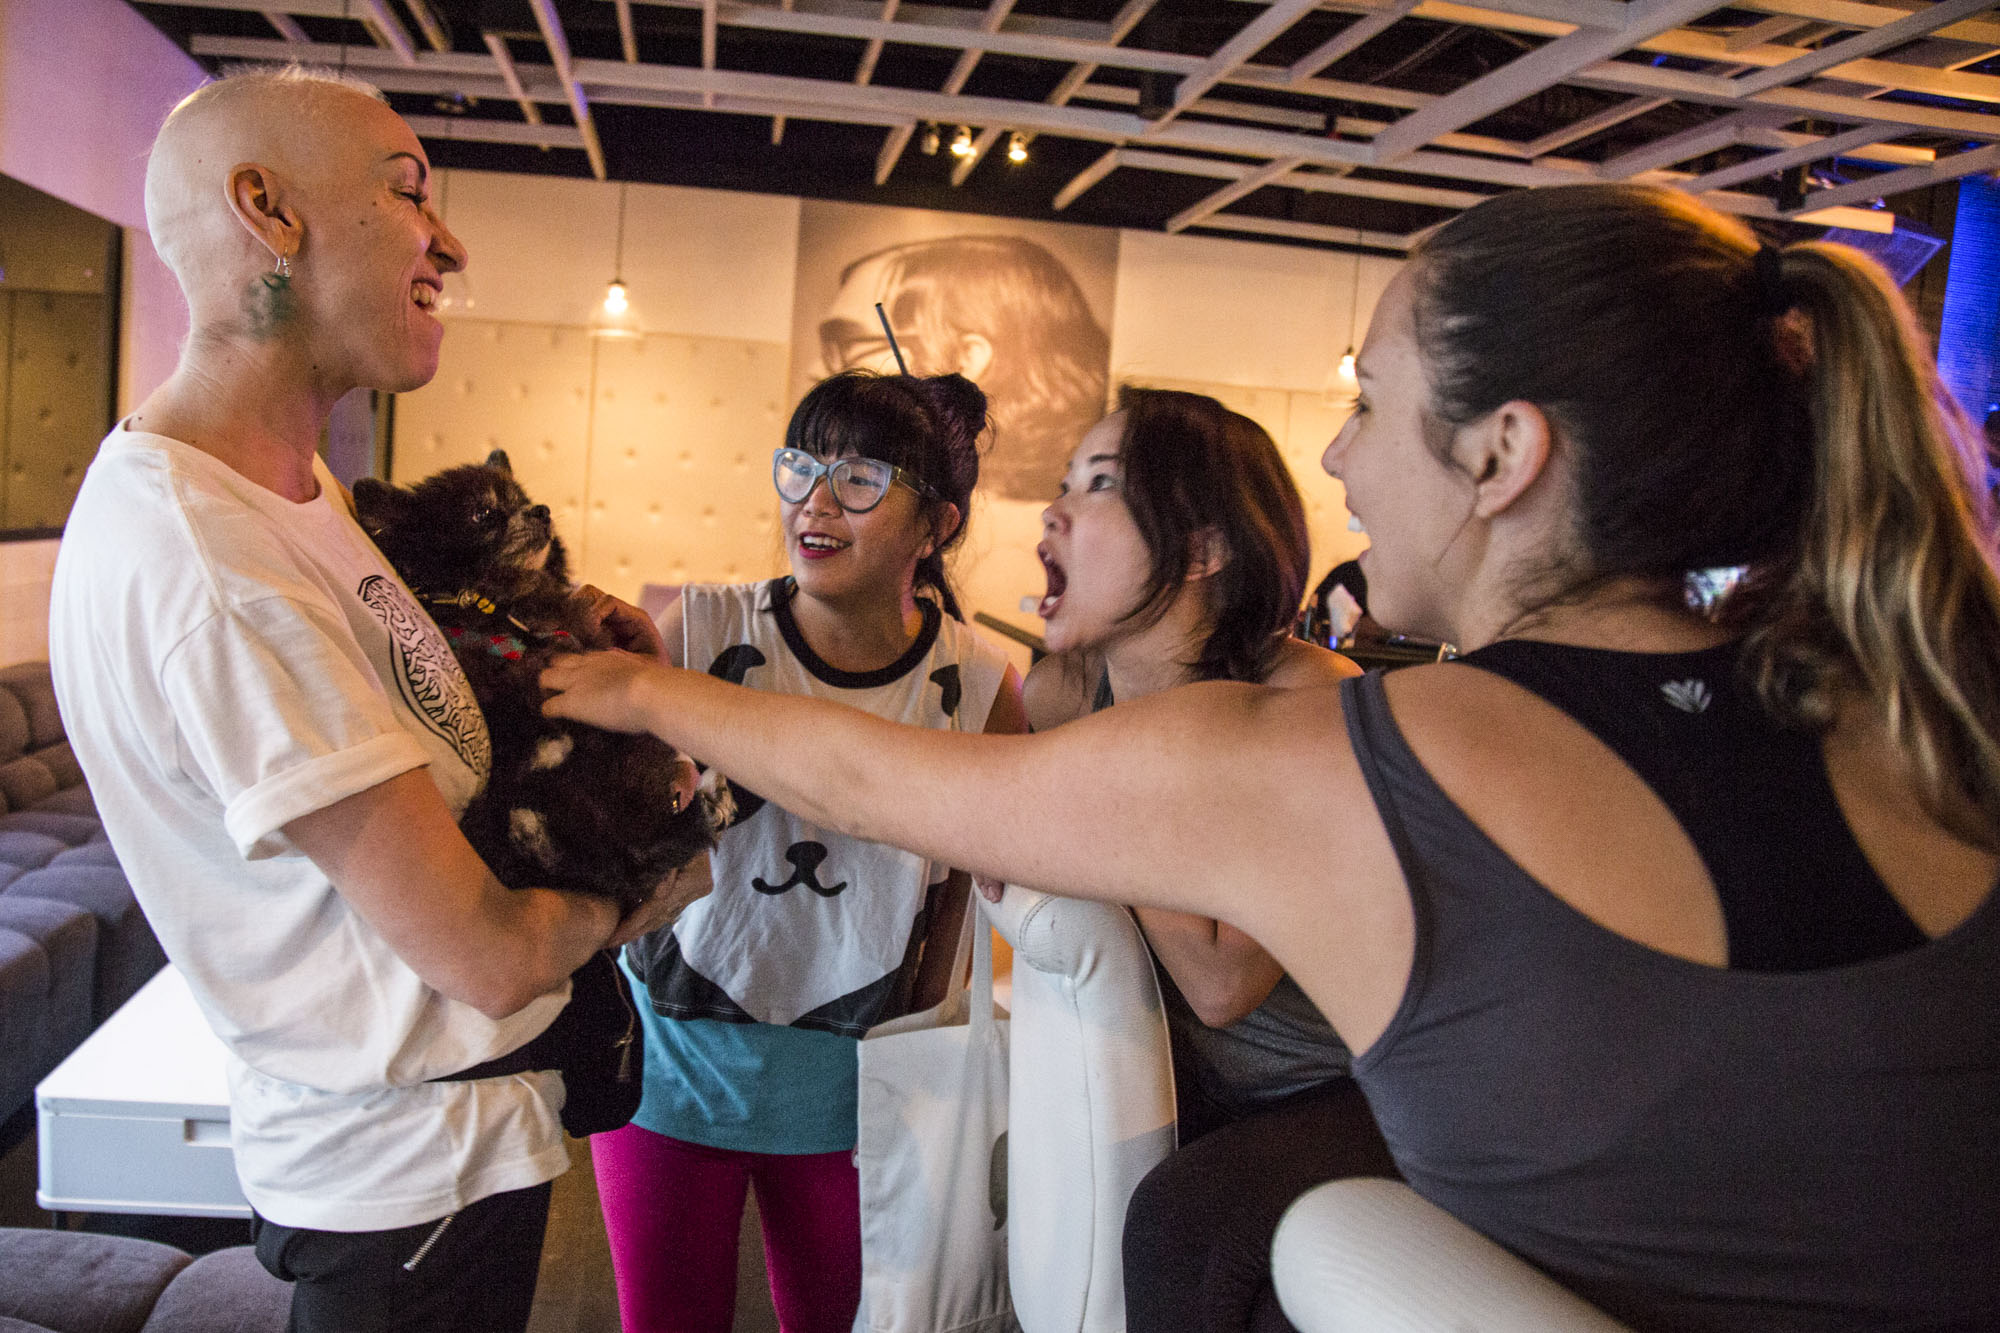 Wittmier excitedly catches up with friends during the Republikʻs first-ever yoga event, ʻYoga Loves CWʻ, an event that was put together in support of Christa.